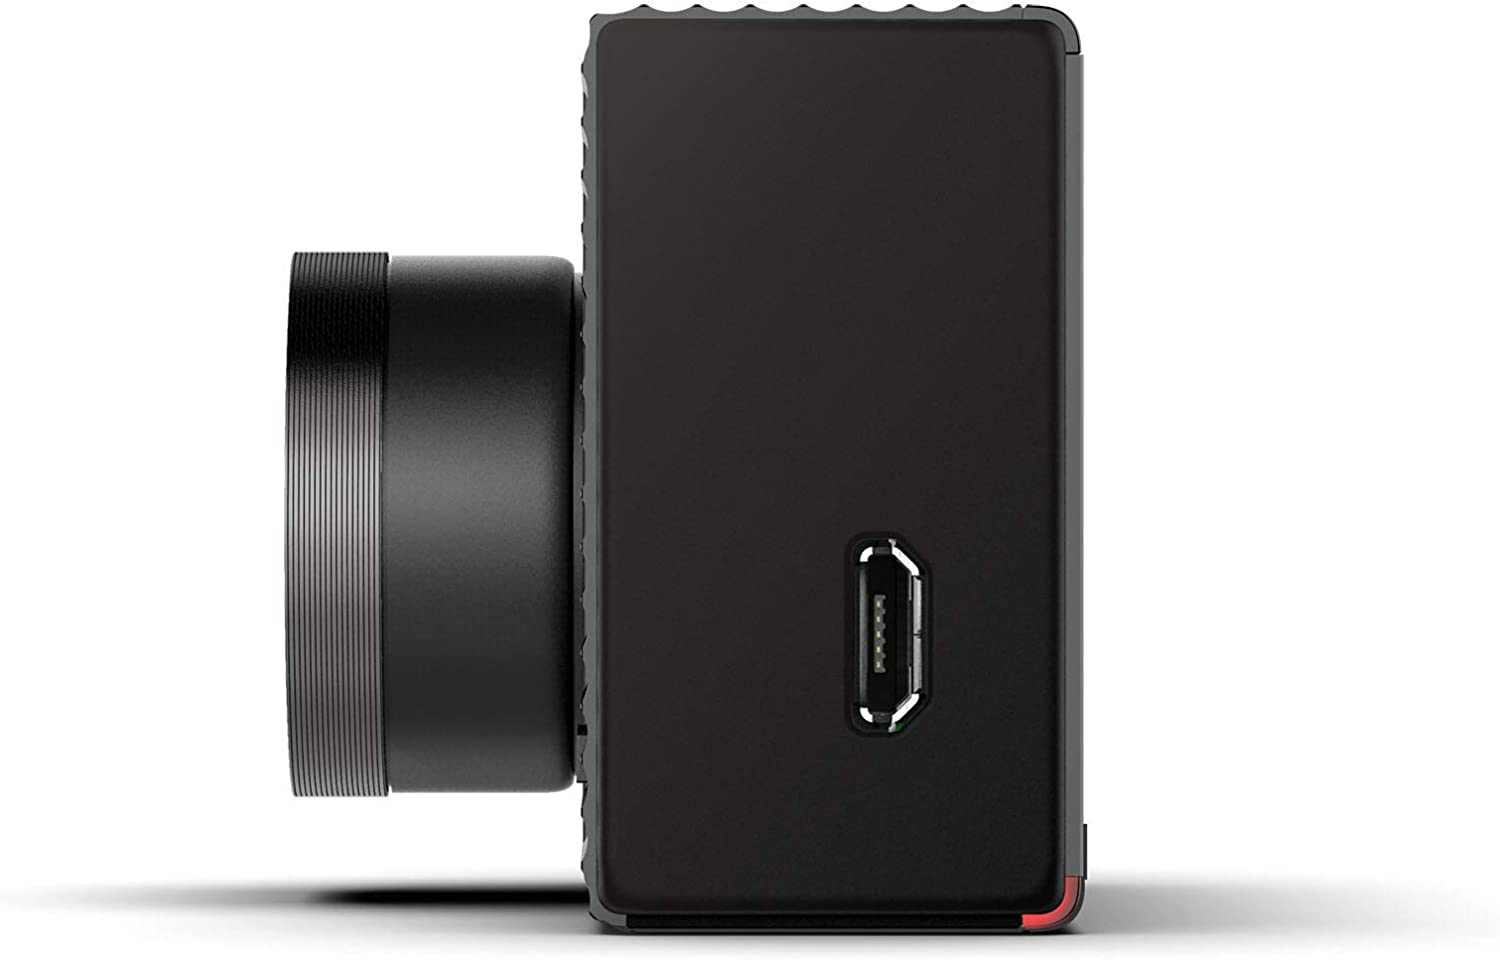 Garmin Dash Cam Tandem Compact Dual-lens Dash Camera with Two 180-degree Lenses that Record in Tandem